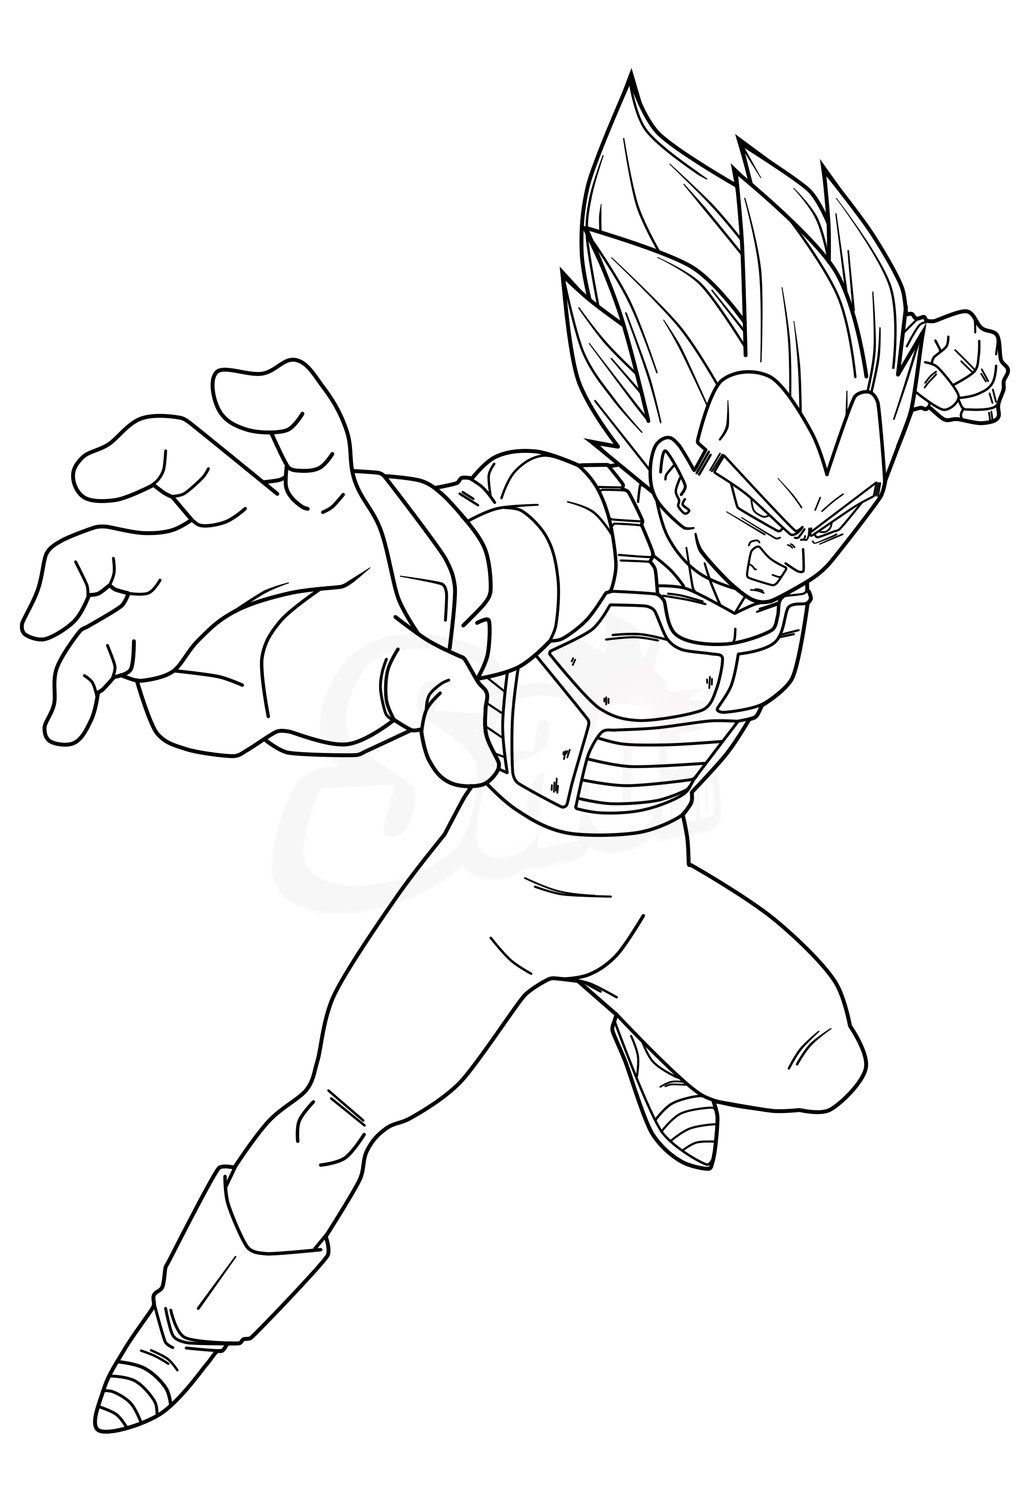 Vegeta Ssjb Lineart By Saodvd On Deviantart Dragon Ball Super Artwork Dragon Ball Super Art Dragon Ball Artwork